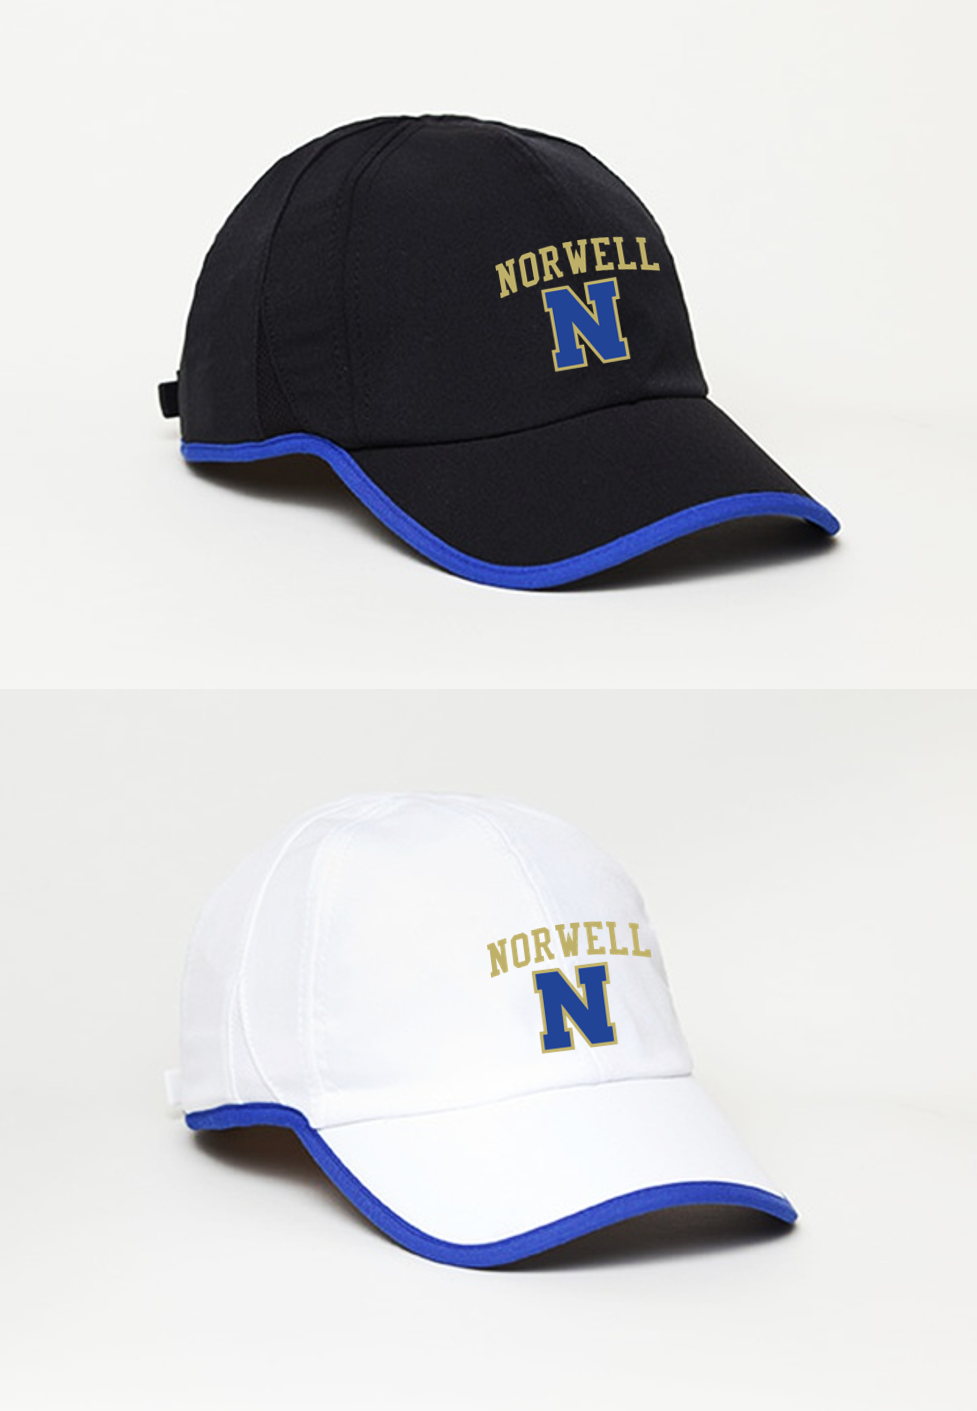 Active Cap Hook-and-Loop - NORWELL TENNIS